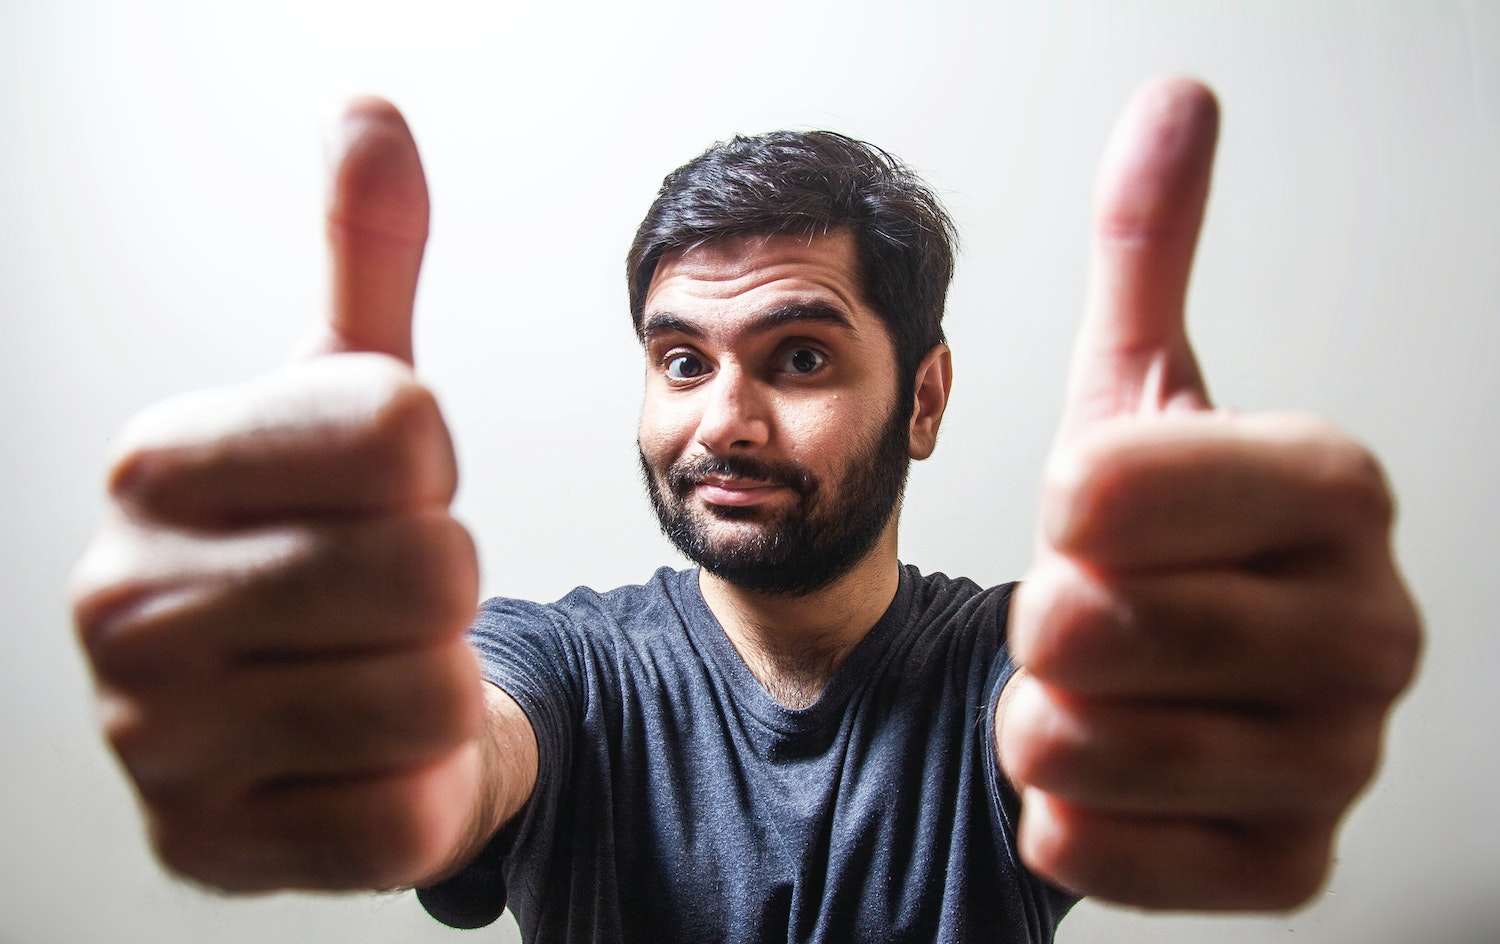 Man stands with two thumbs up as he smiles at the camera. He is feeling more focused after adult adhd therapy in columbus, oh. Open Pathways Counseling offers online adhd therapy in ohio, cbt for adult adhd in columbus, oh, adhd treatment for adults in columbus, ohio, and other services. Contact us today for the support you deserve